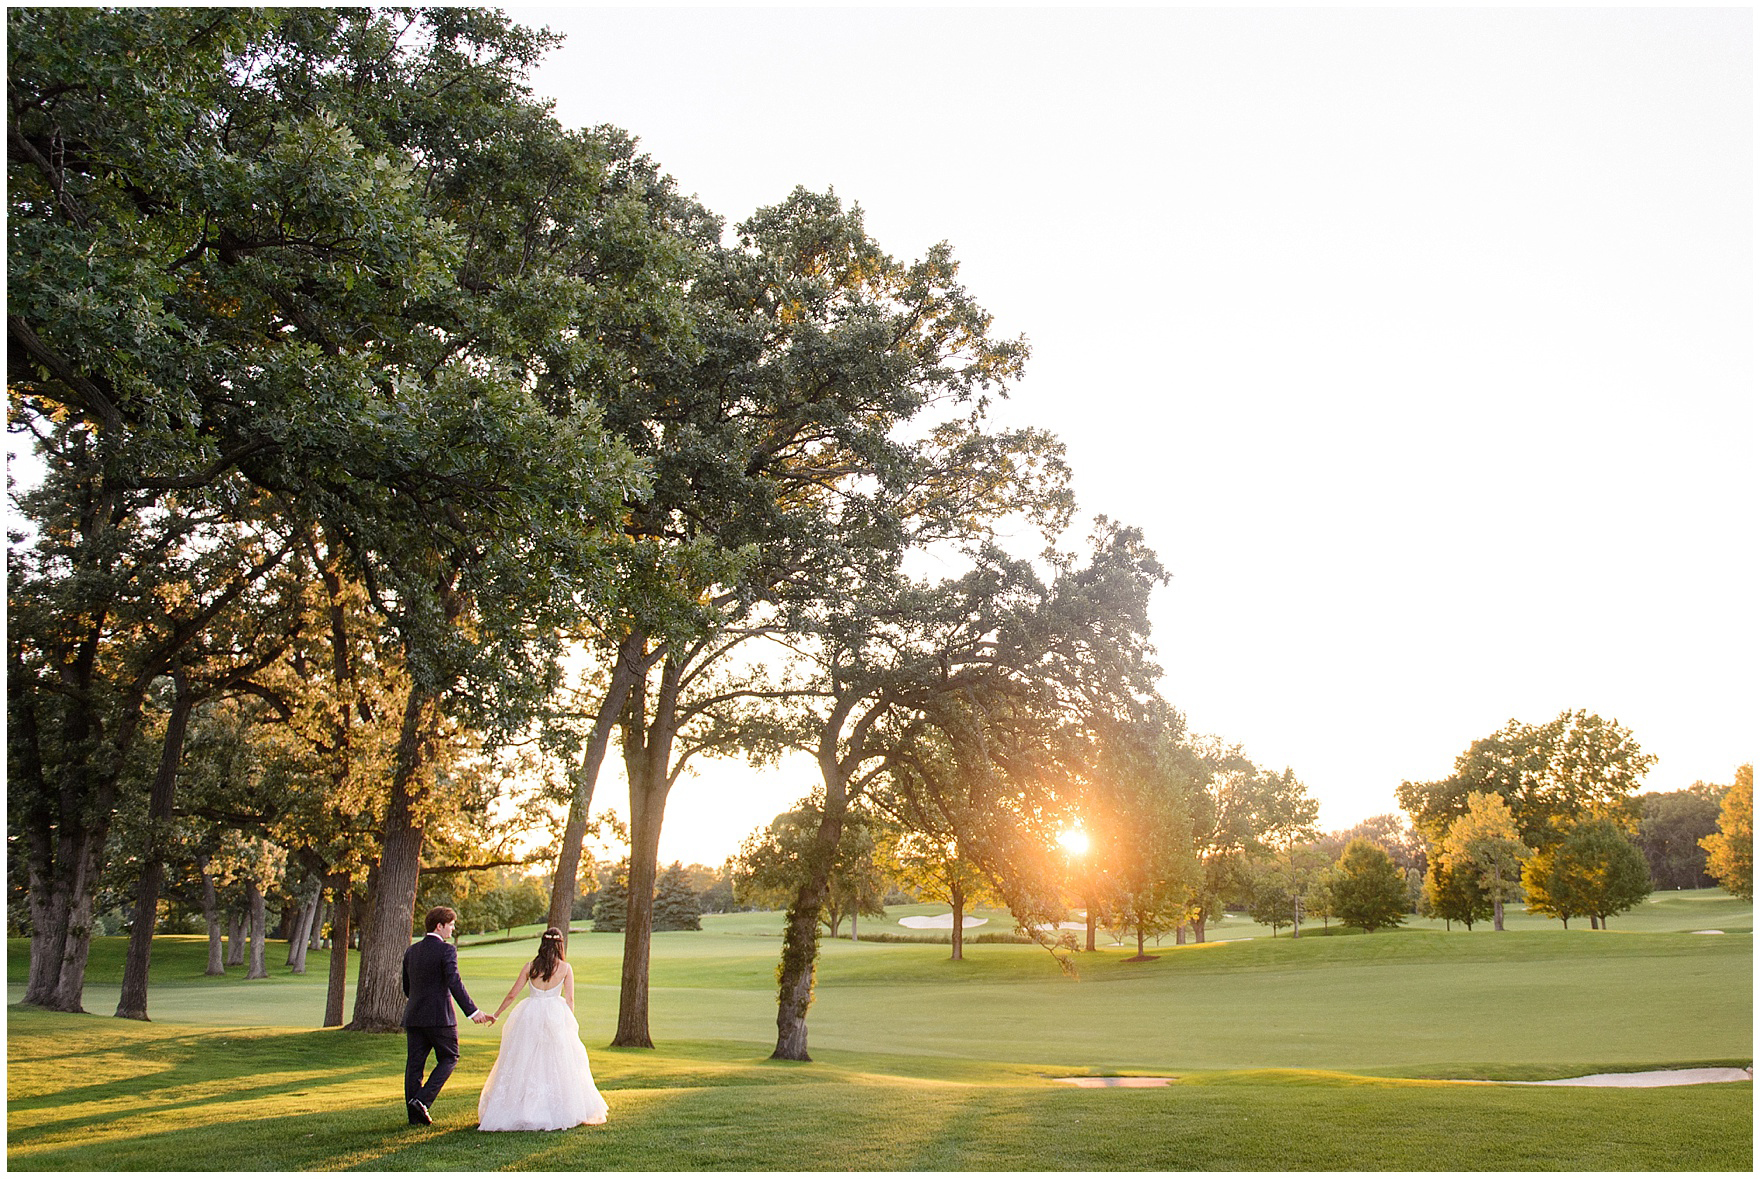 The bride and groom walk and embrace at sunset at their Butterfield Country Club wedding.